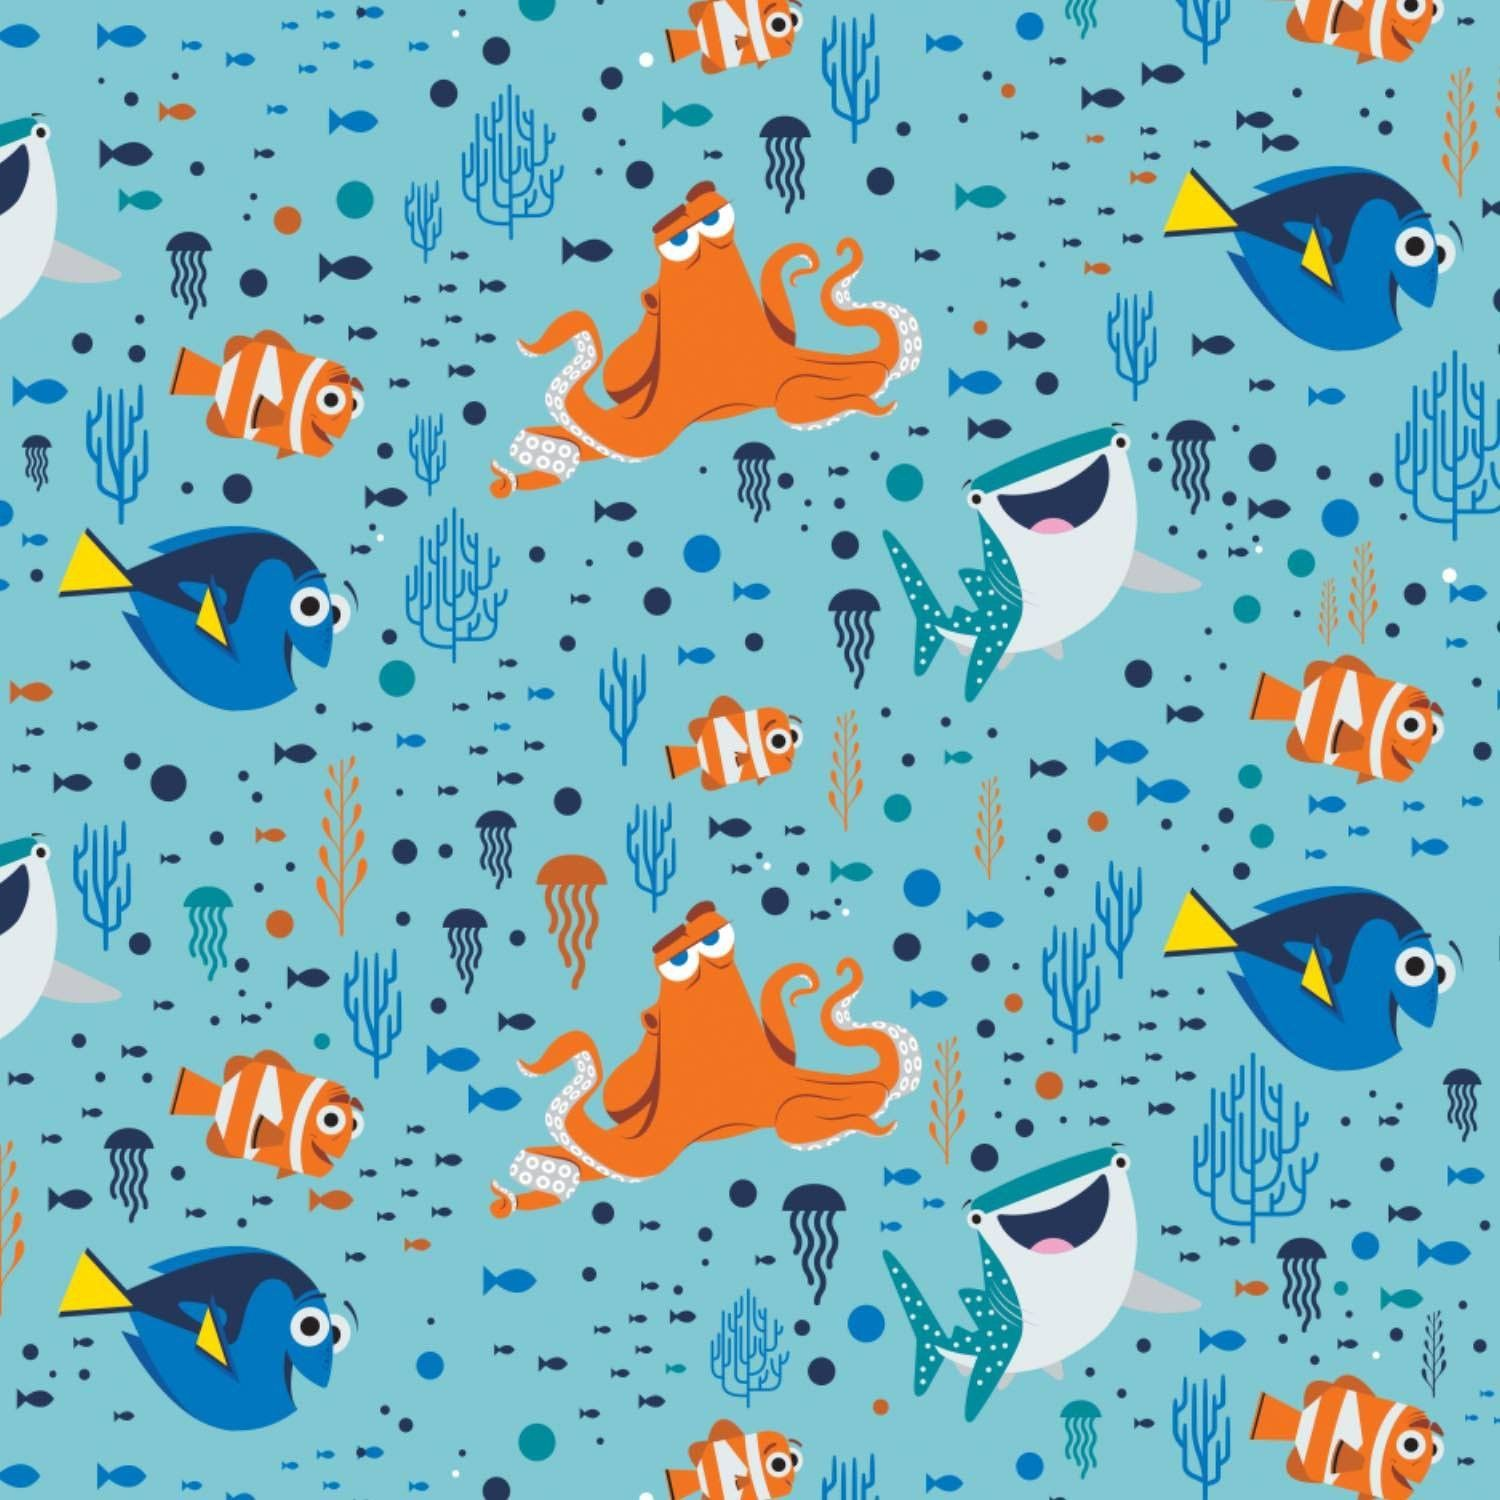 Disney Finding Dory Characters Turquoise 85170101 100/% cotton fabric by the yard